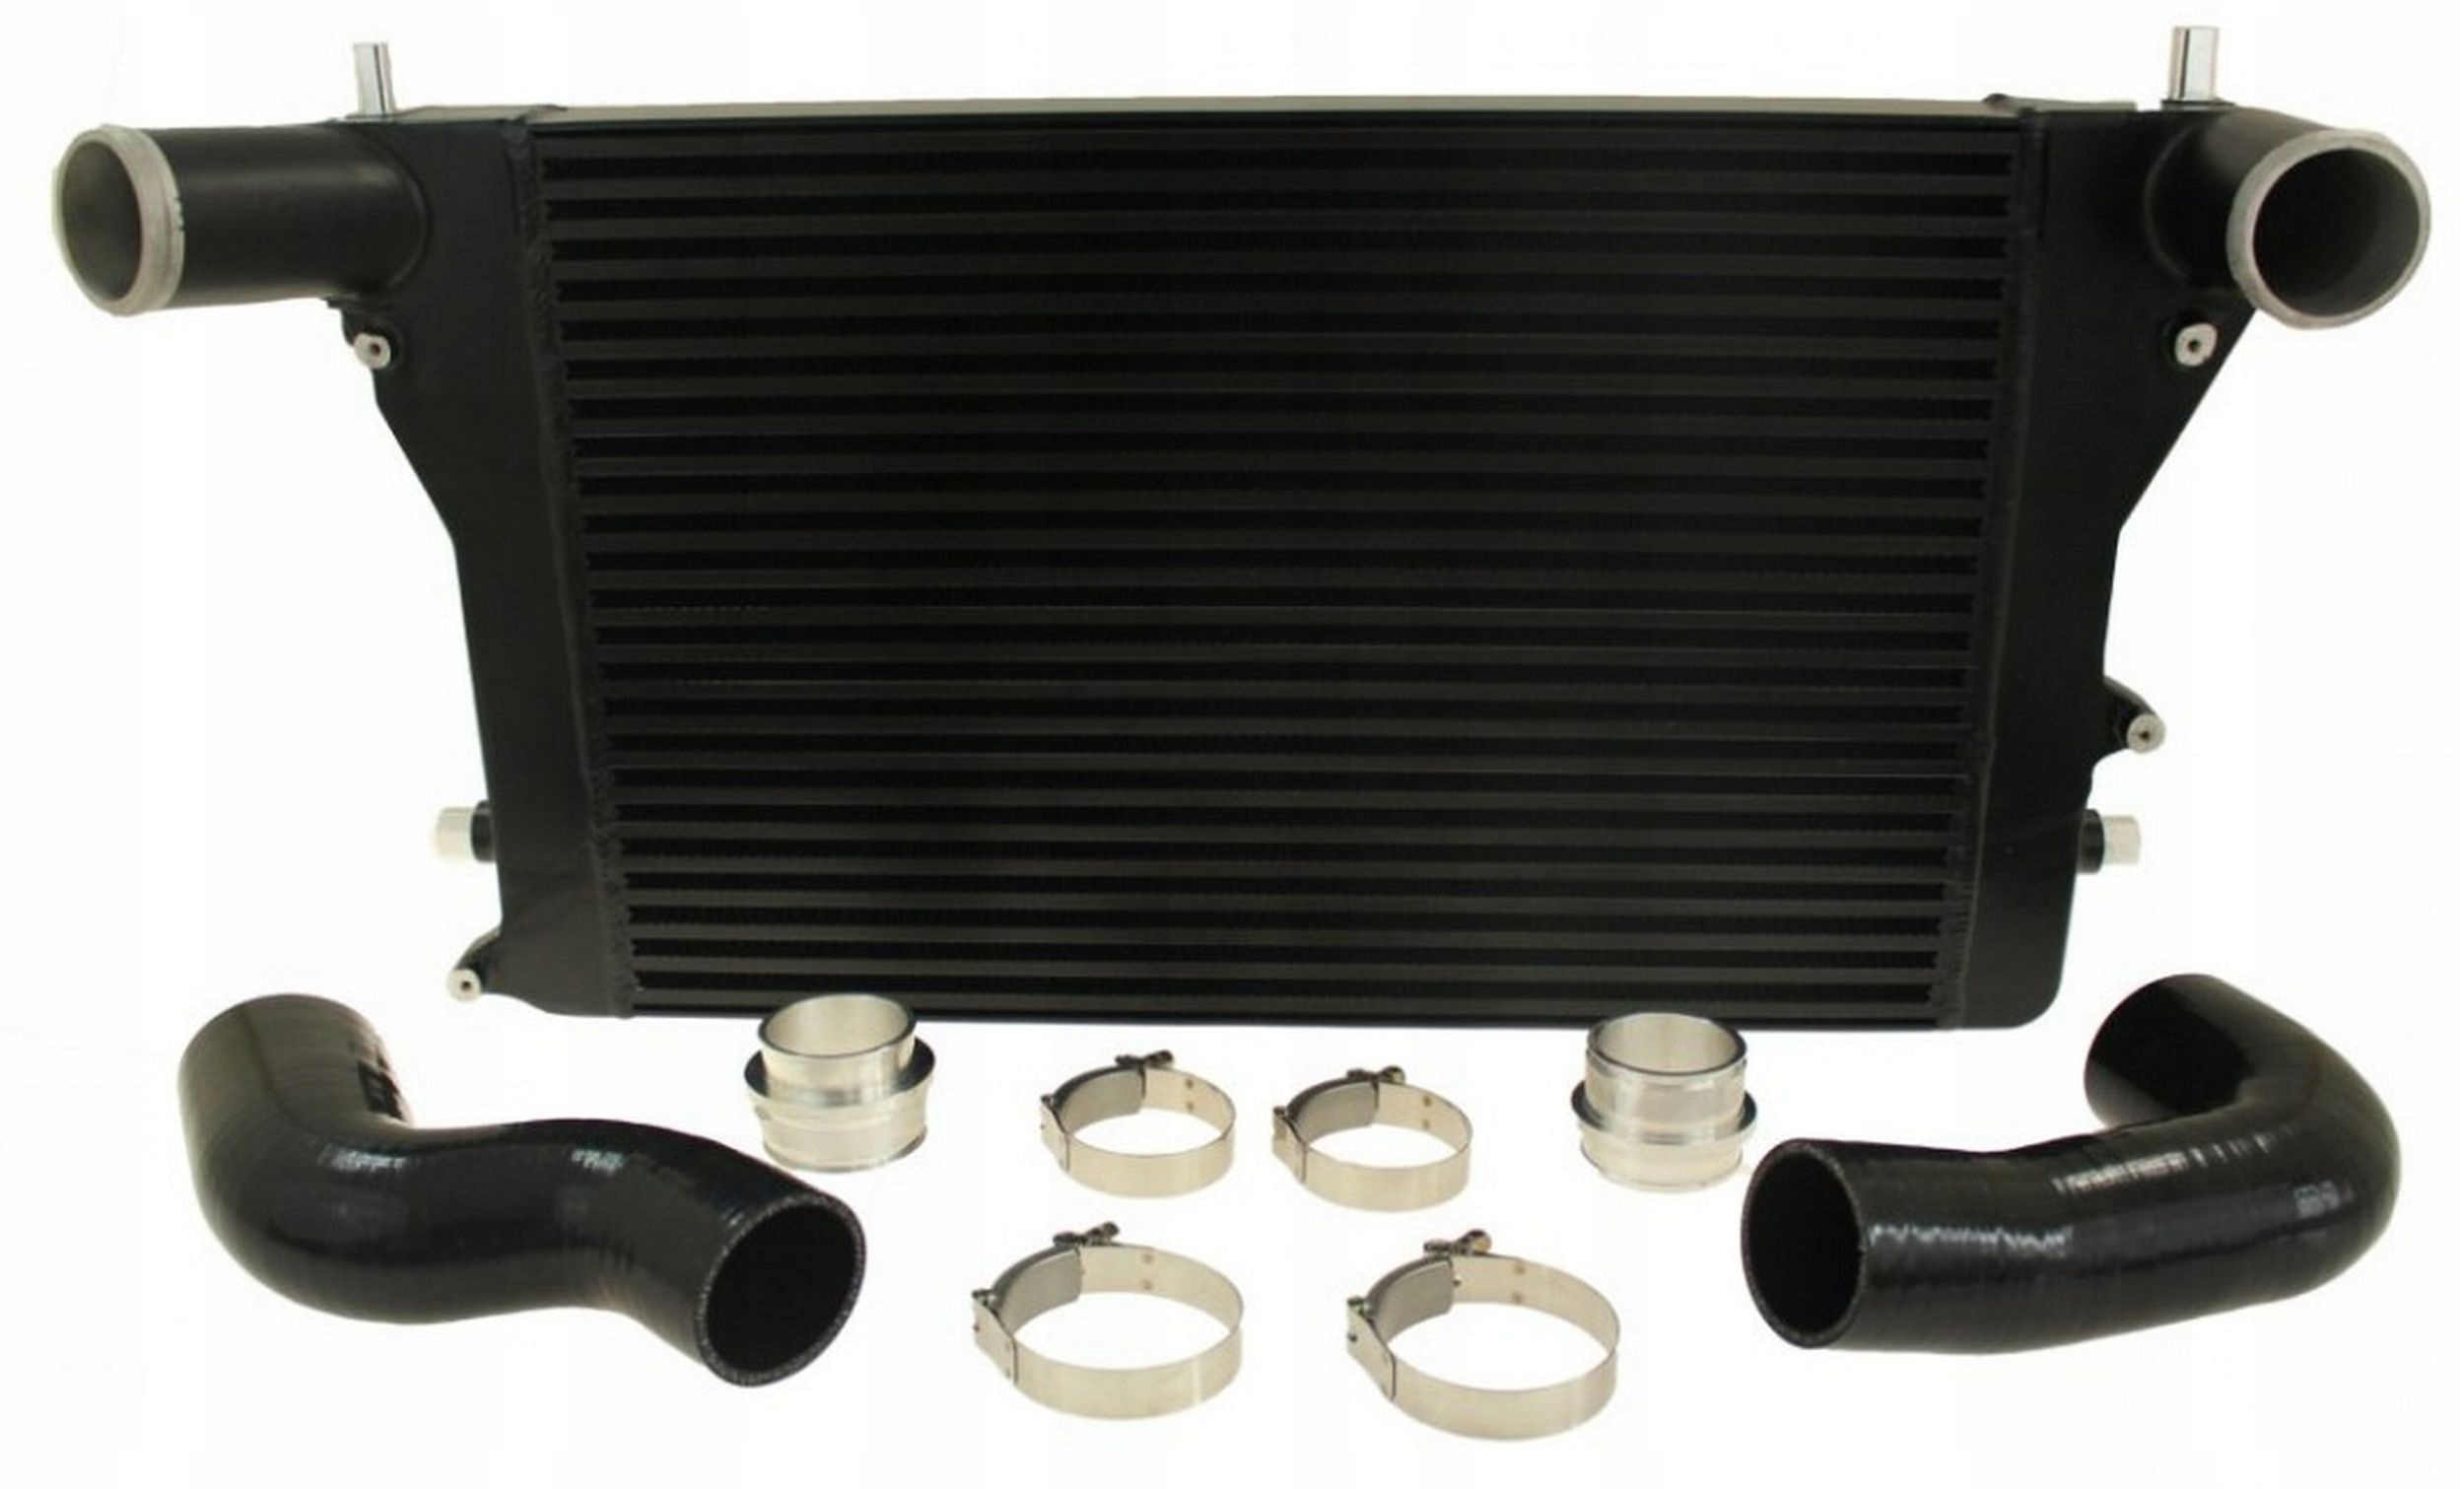 INTERCOOLER SPORTOWY VW GOLF 5 6 2.0T GTI 2008-13